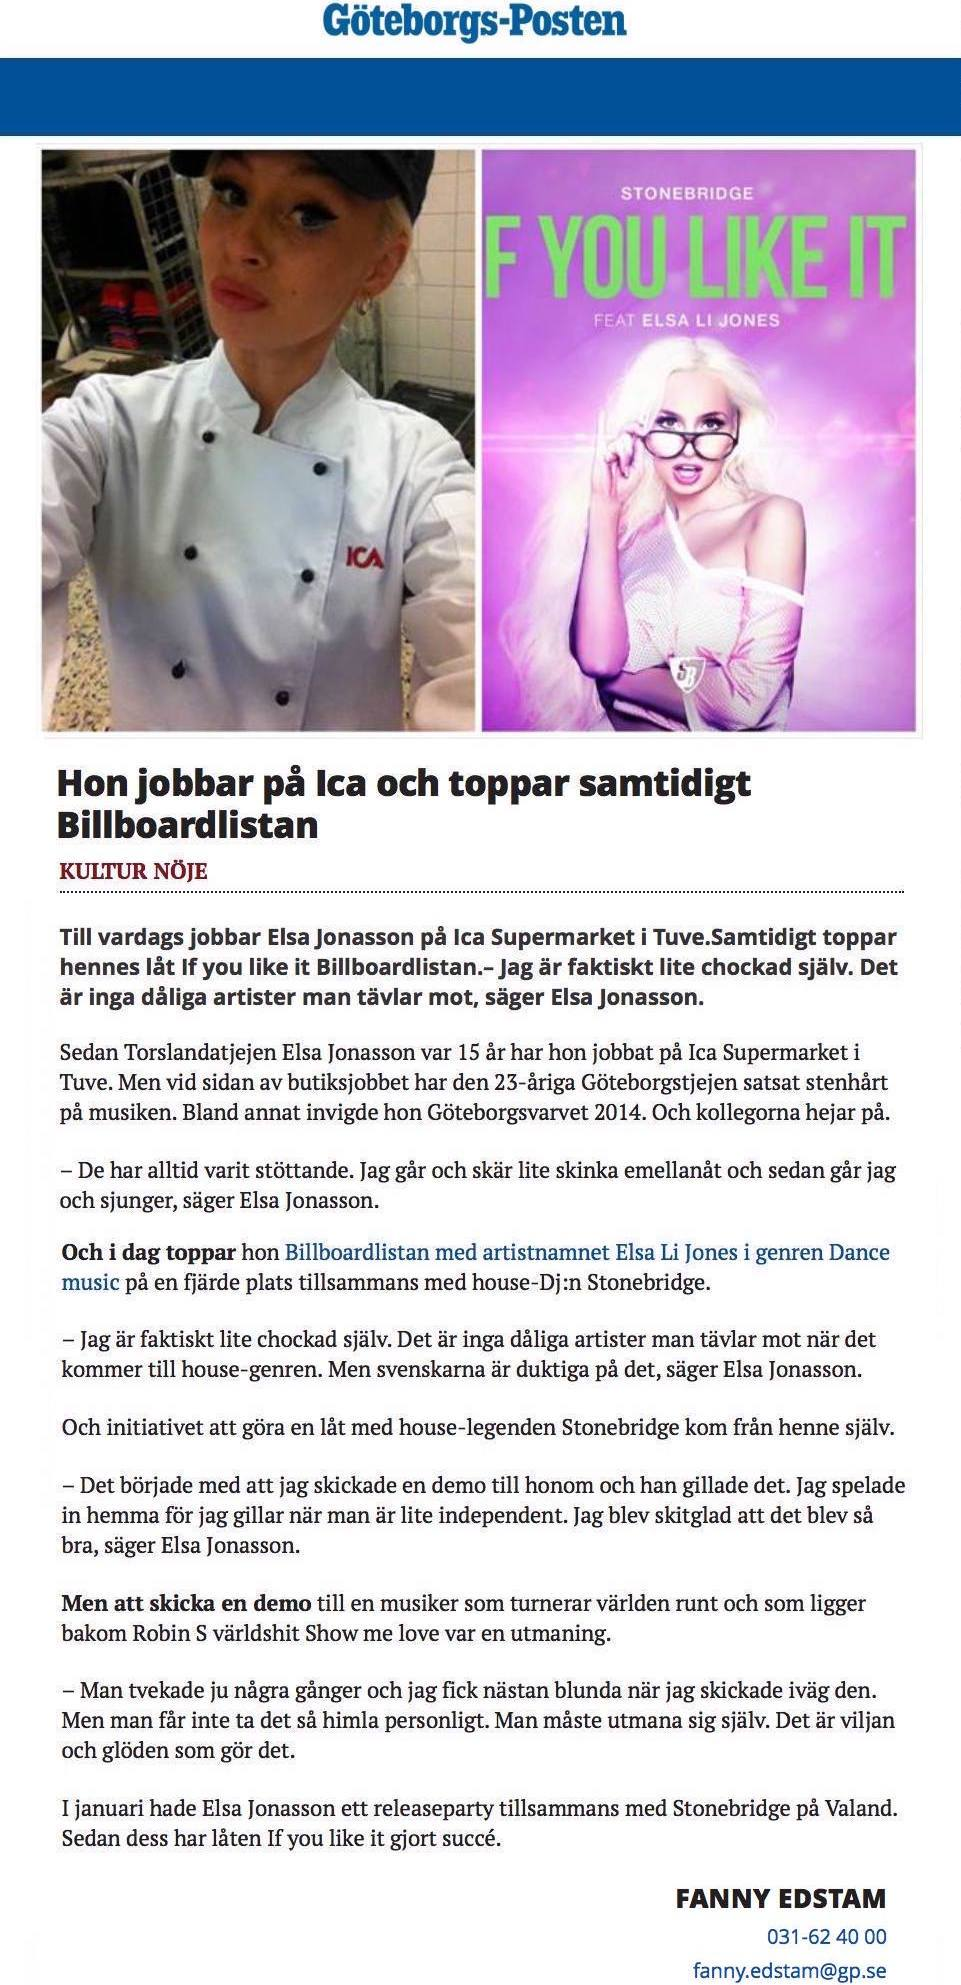 stonebridge if you like it on Billboard swedish article